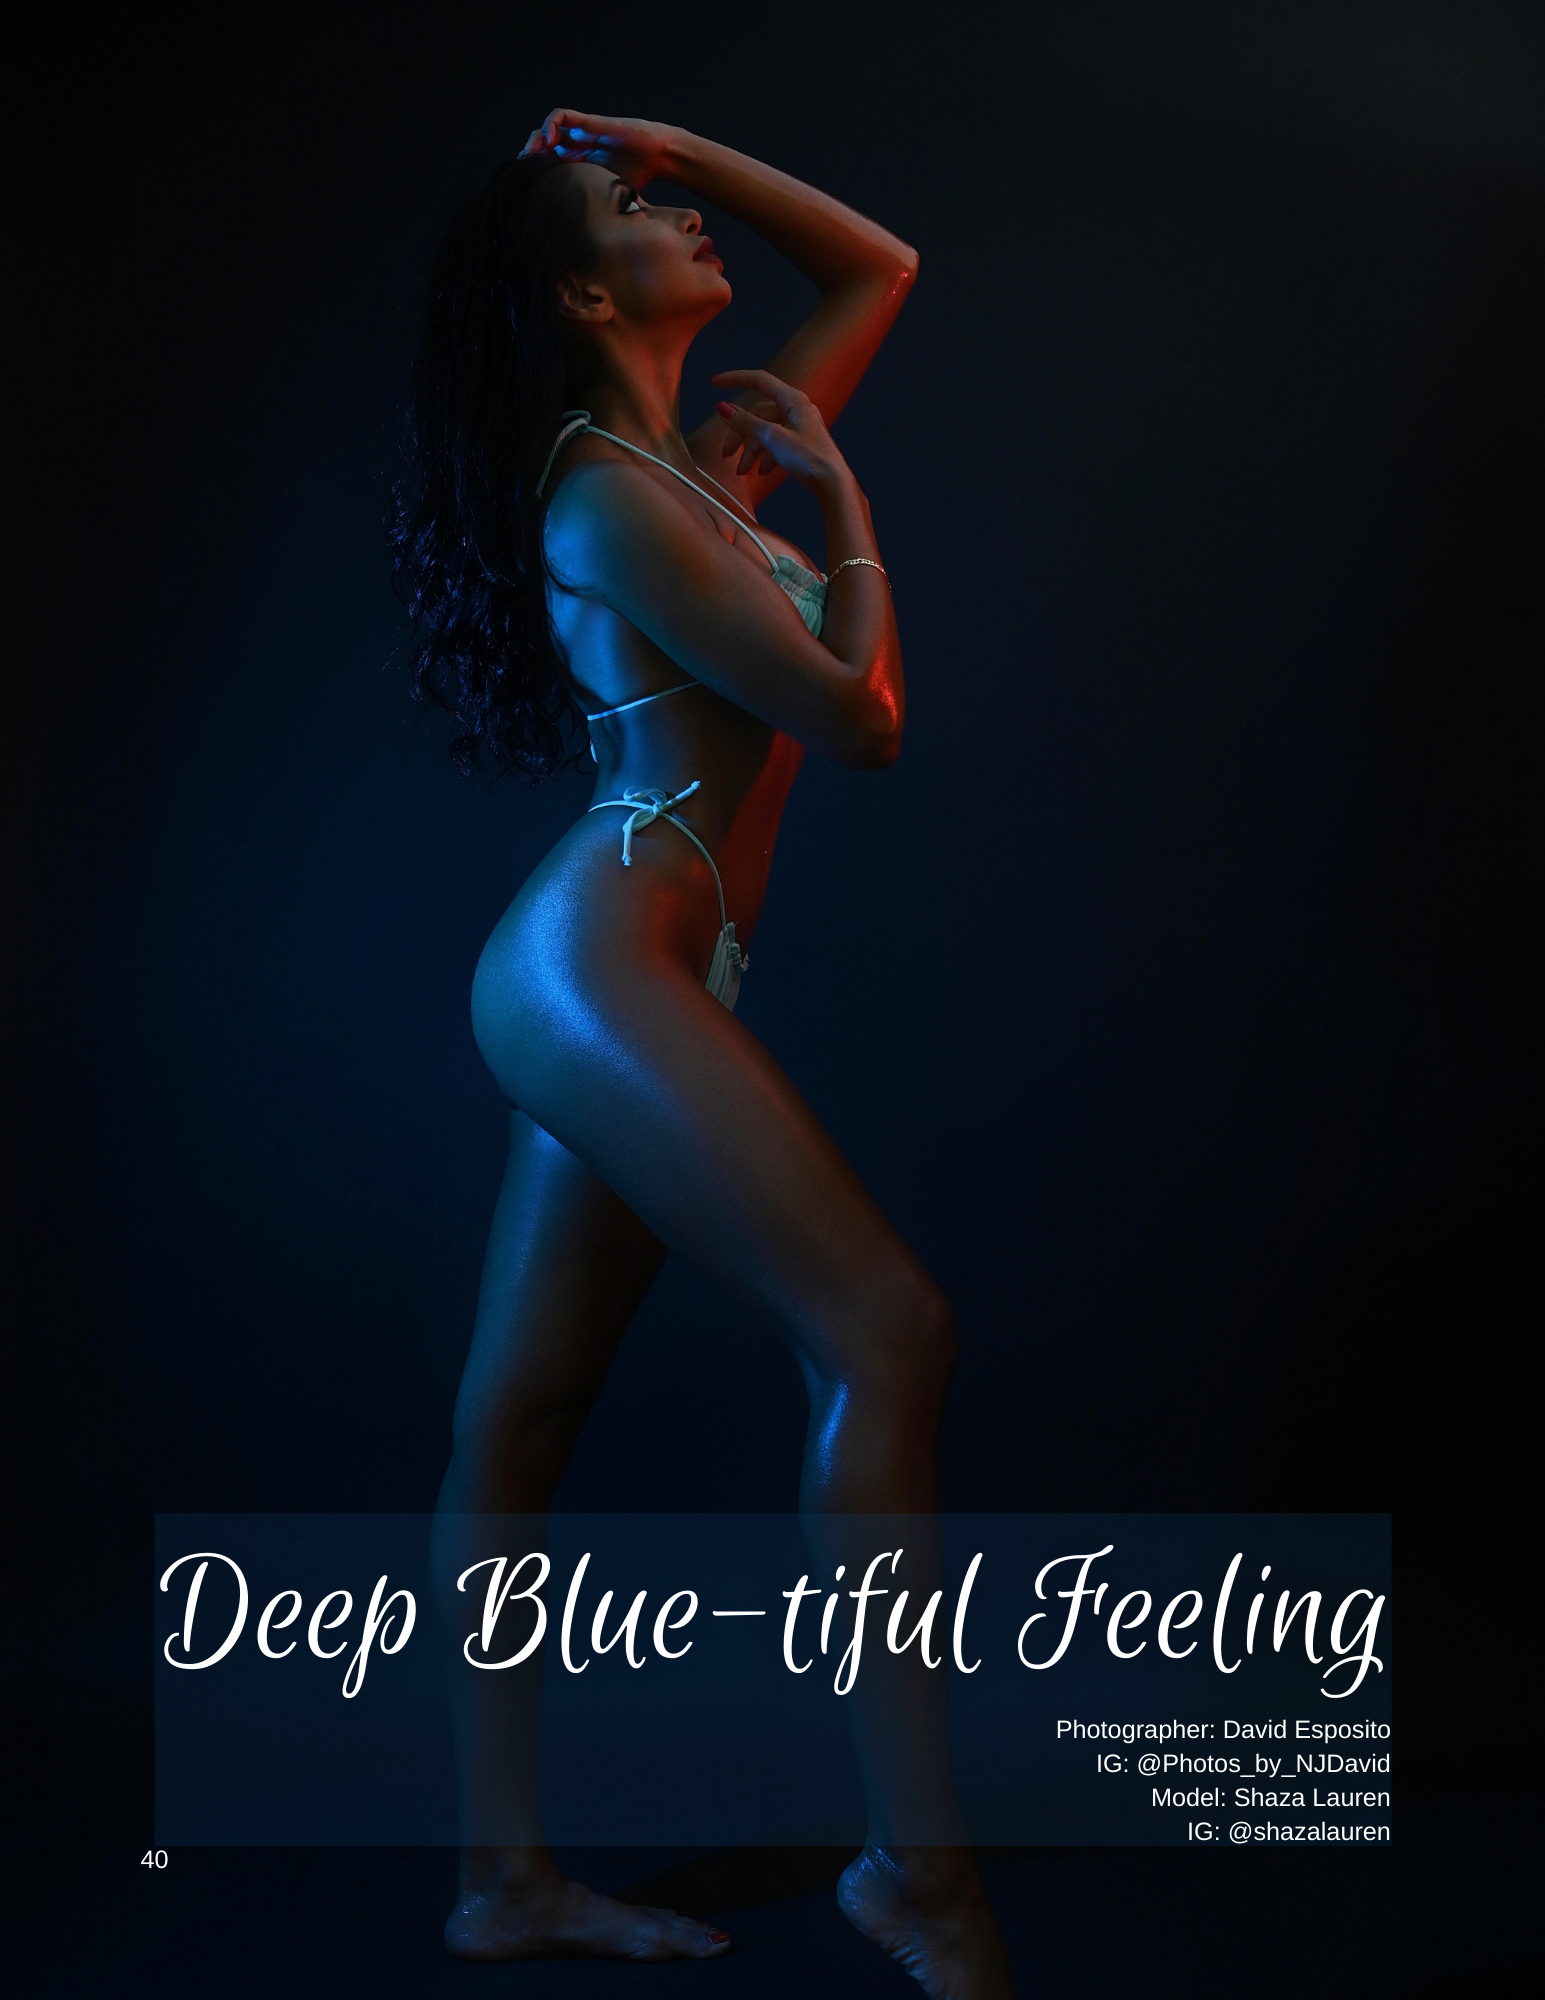 Deep Blue-tiful Feeling